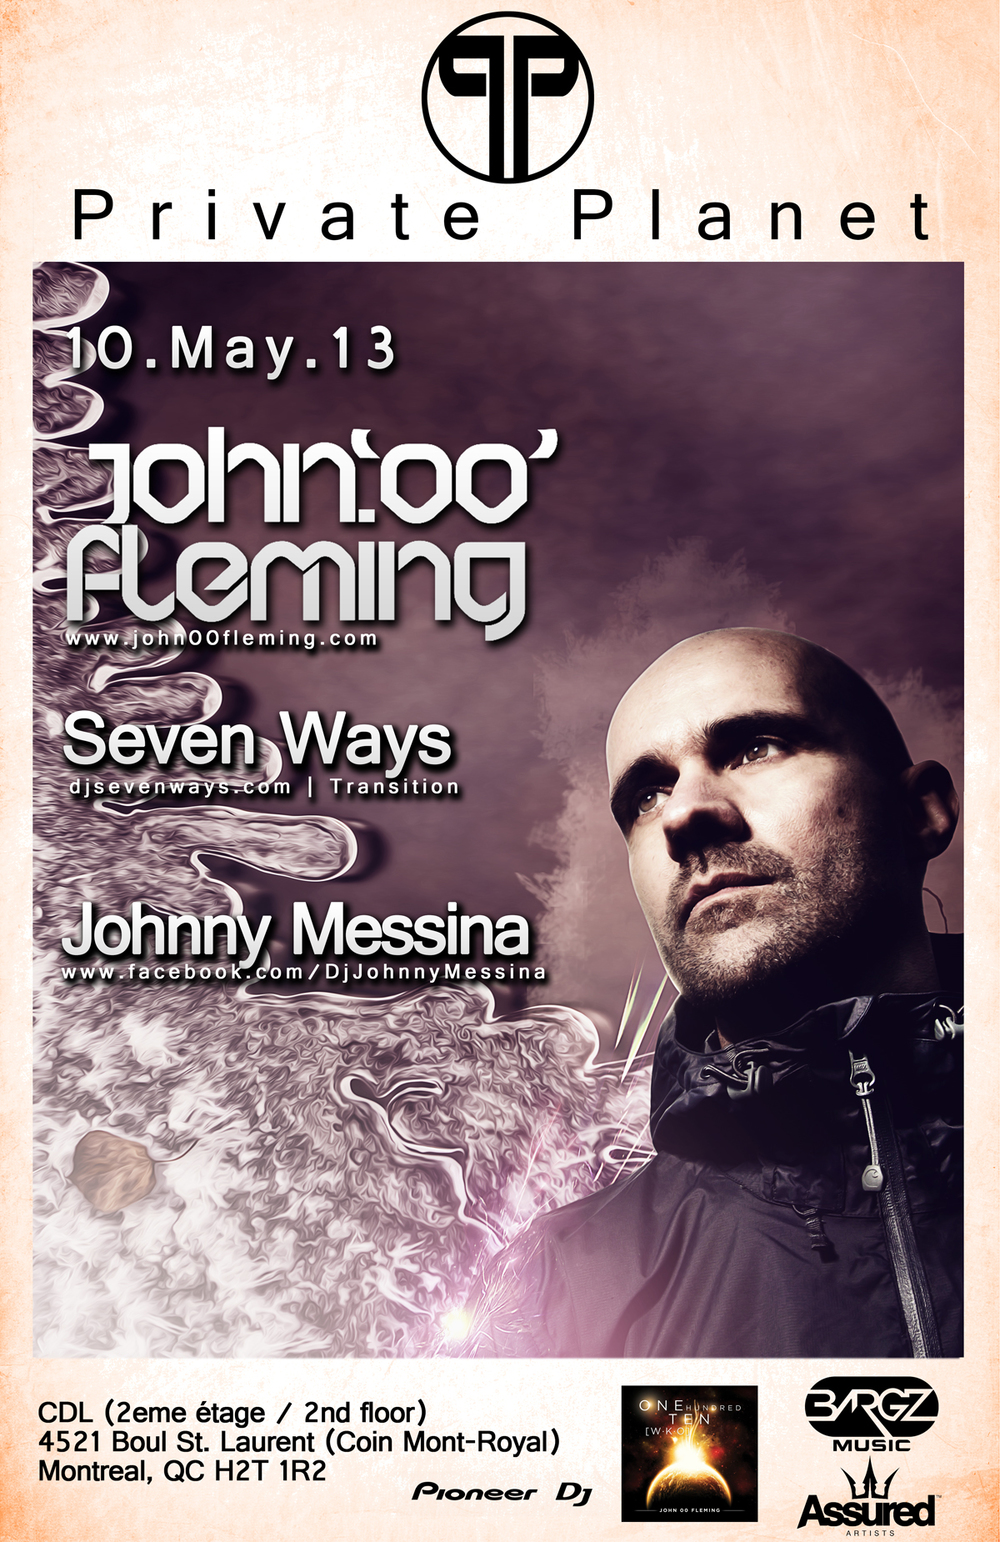 John '00' Fleming, Seven Ways, Johnny Messina CDL Montreal